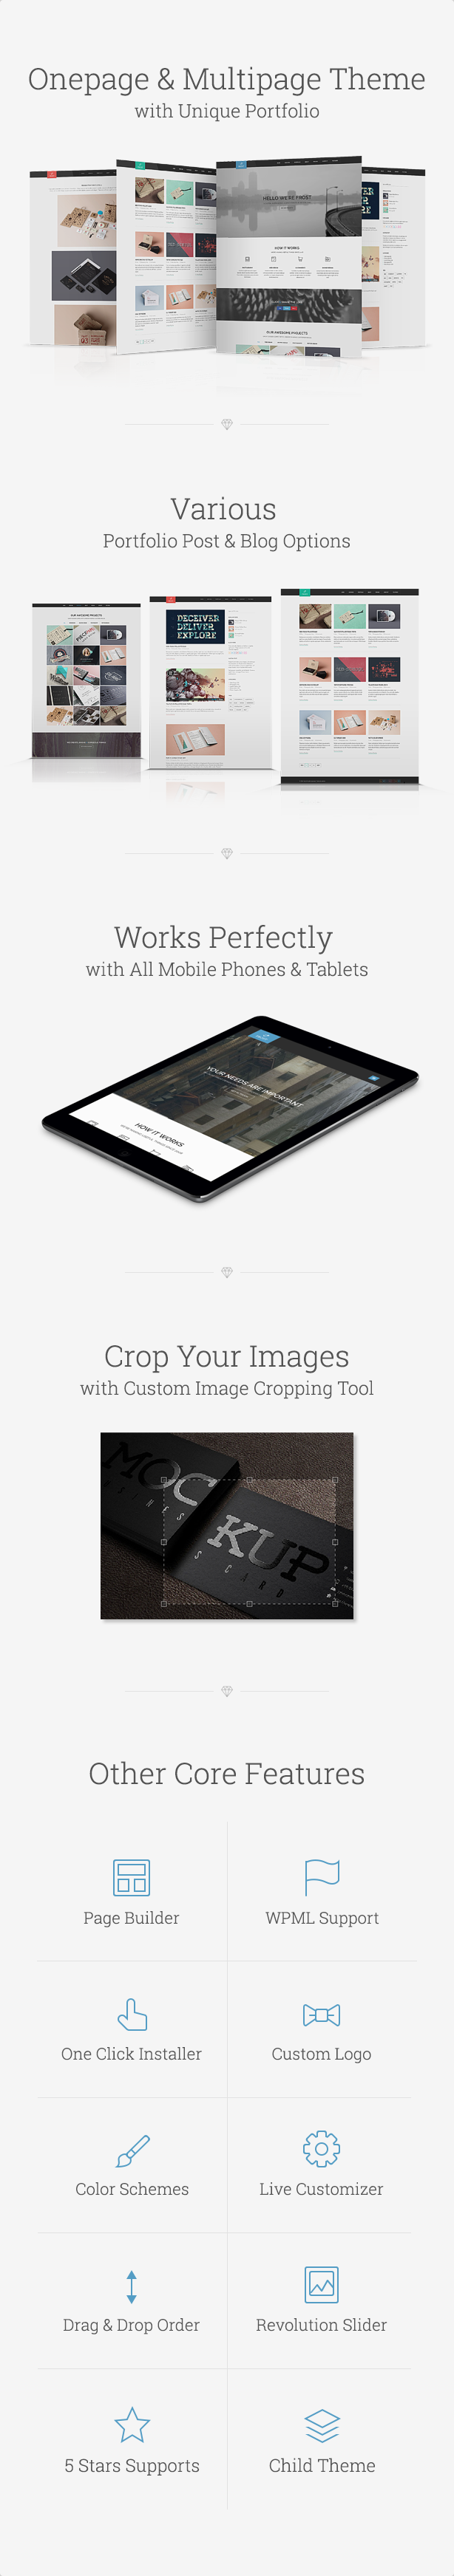 Frost WordPress theme main features